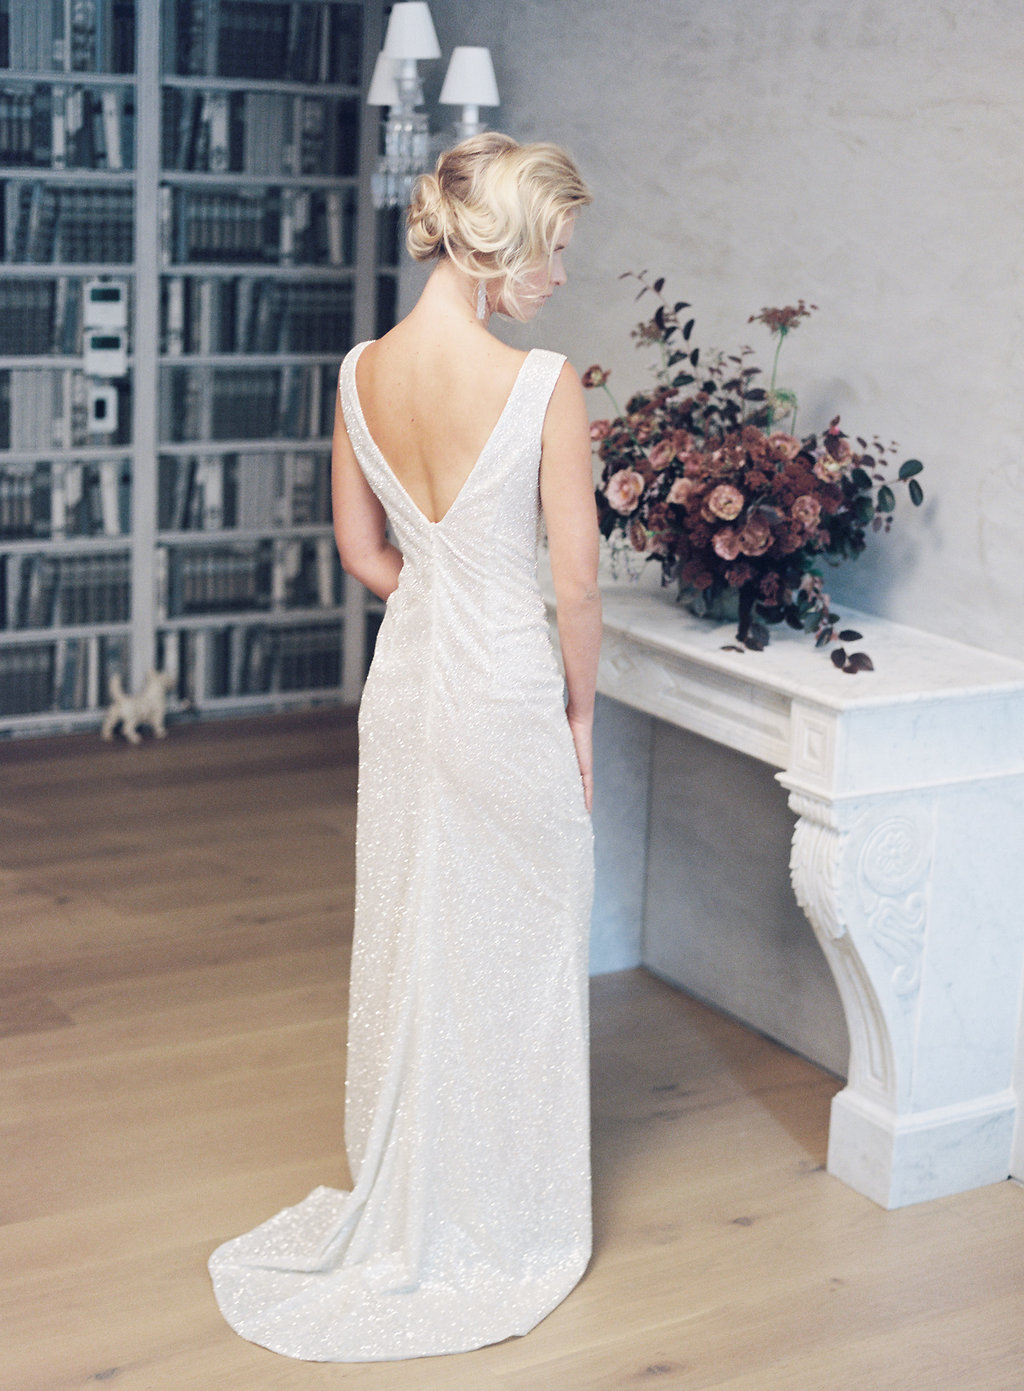 TanyaAnicBridalCollection-171.jpg